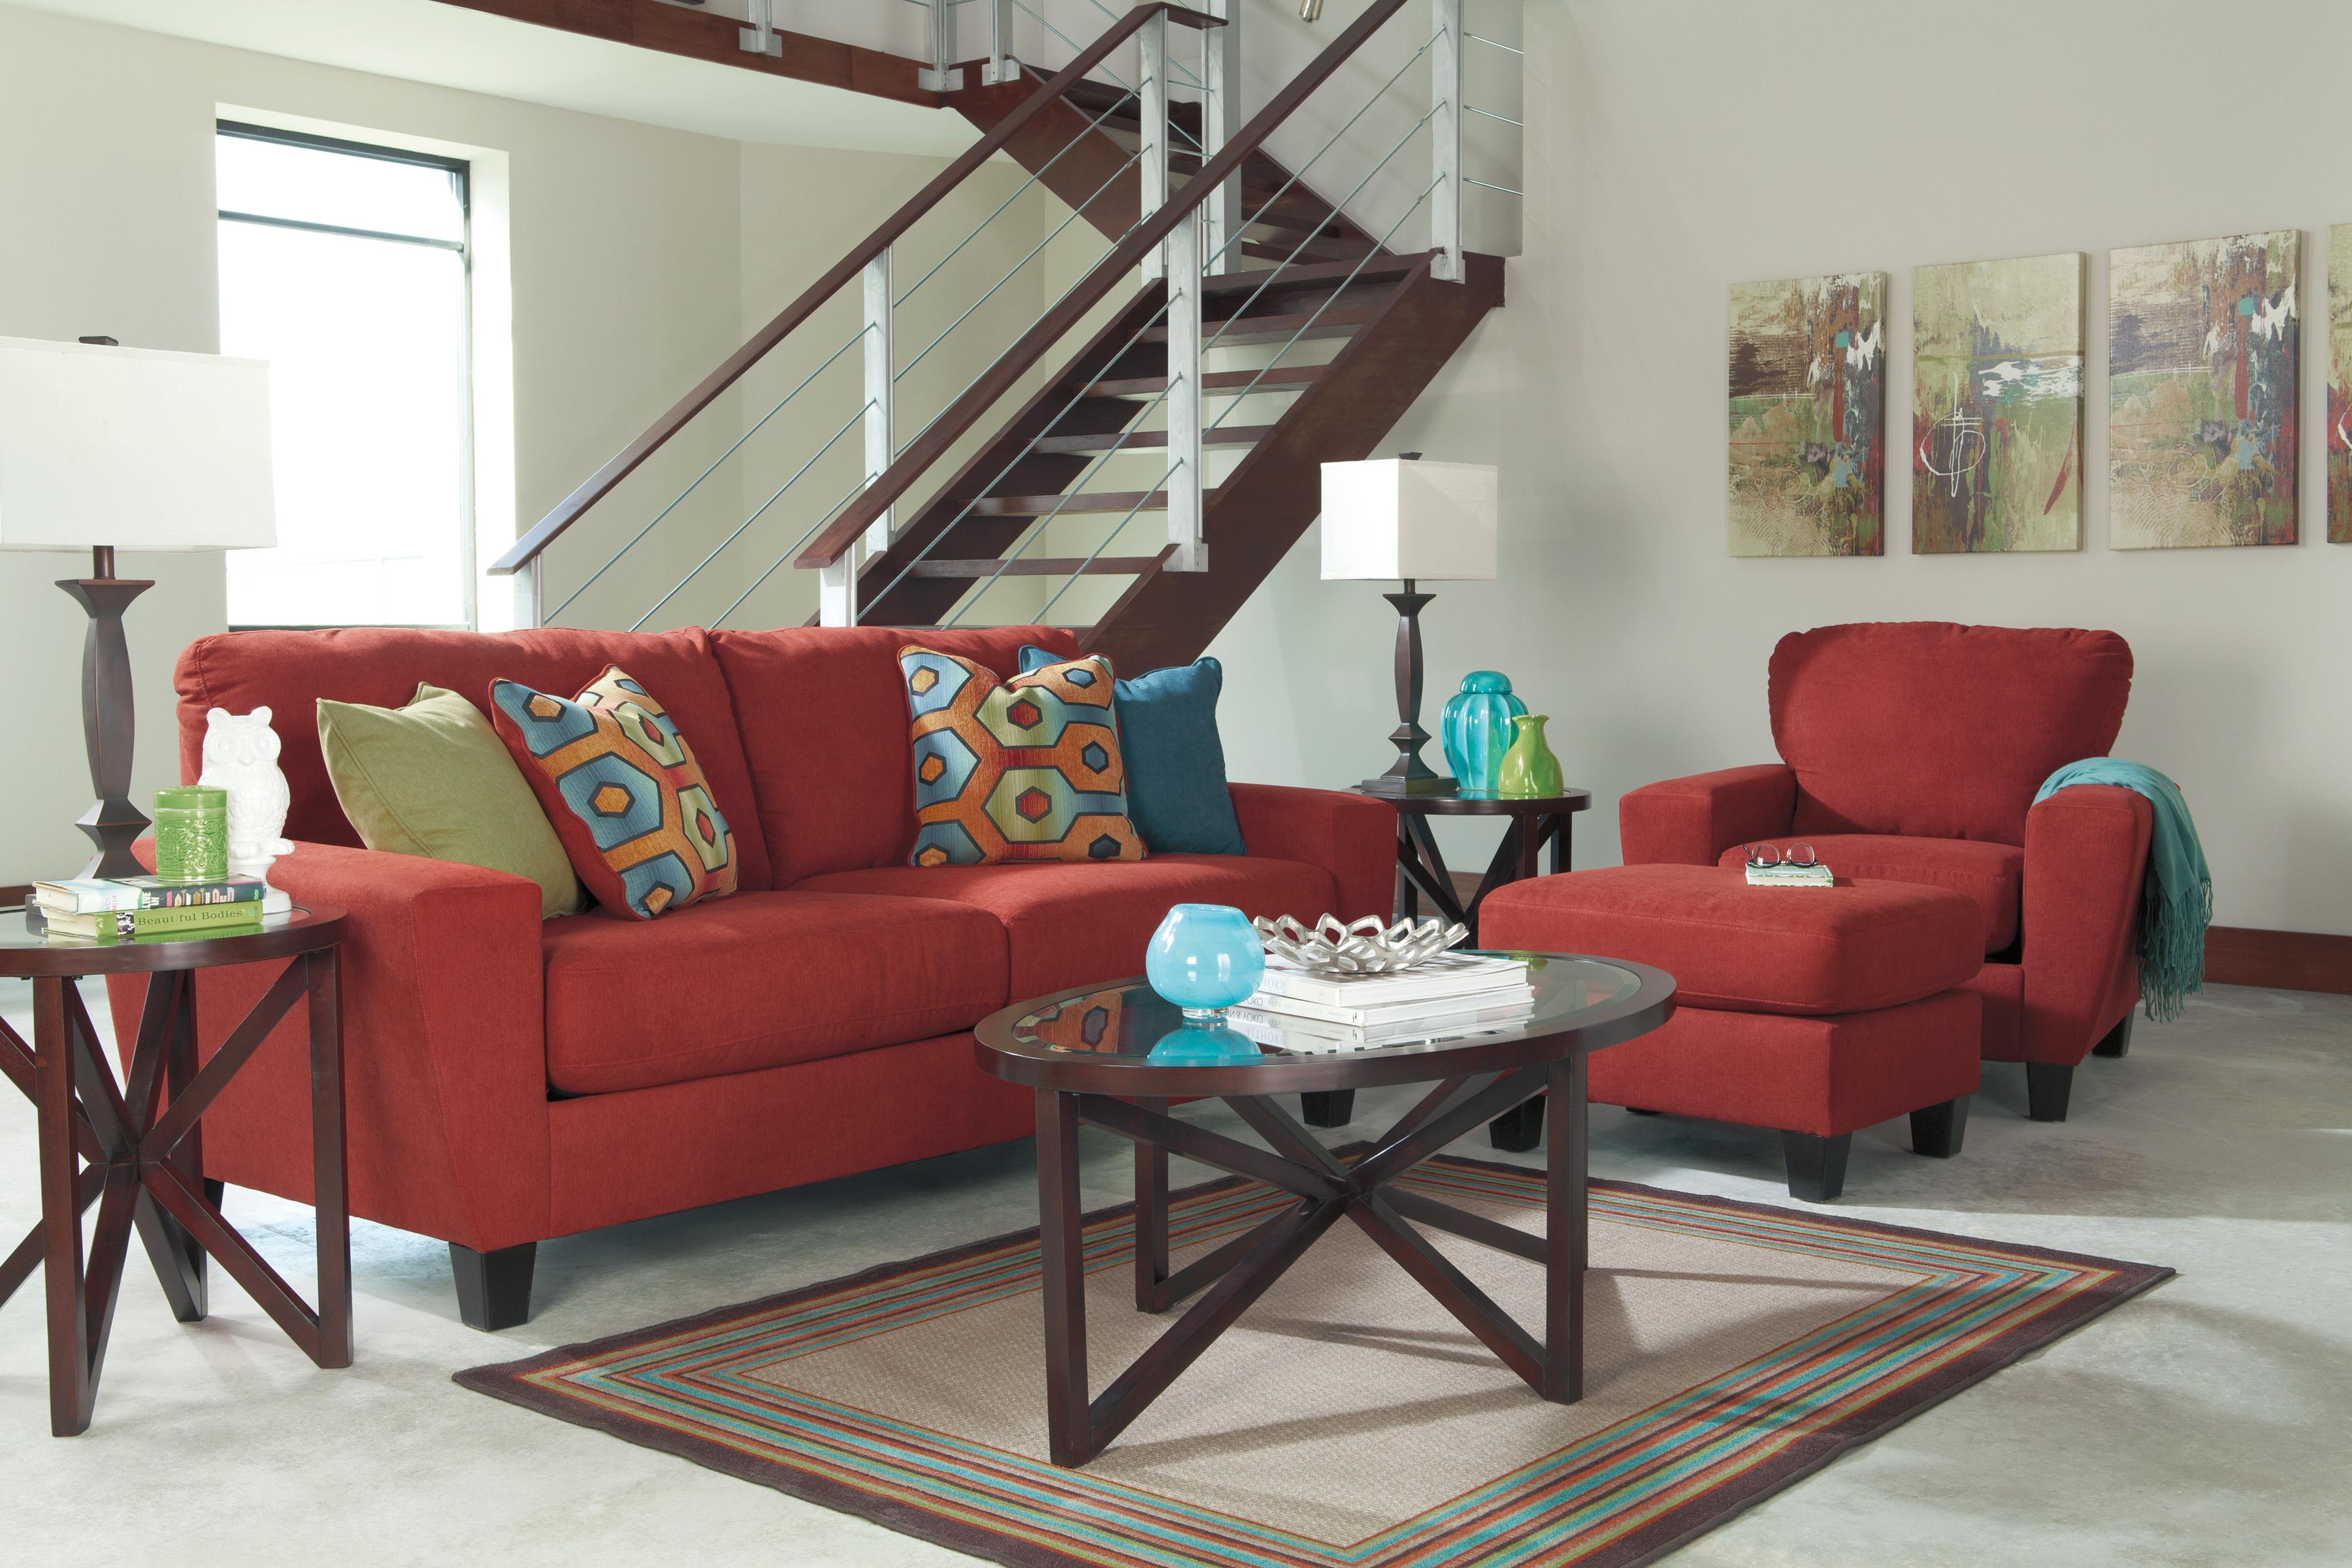 Signature Design by Ashley Sagen Stationary Living Room Group - Item Number: 93903 Living Room Group 2